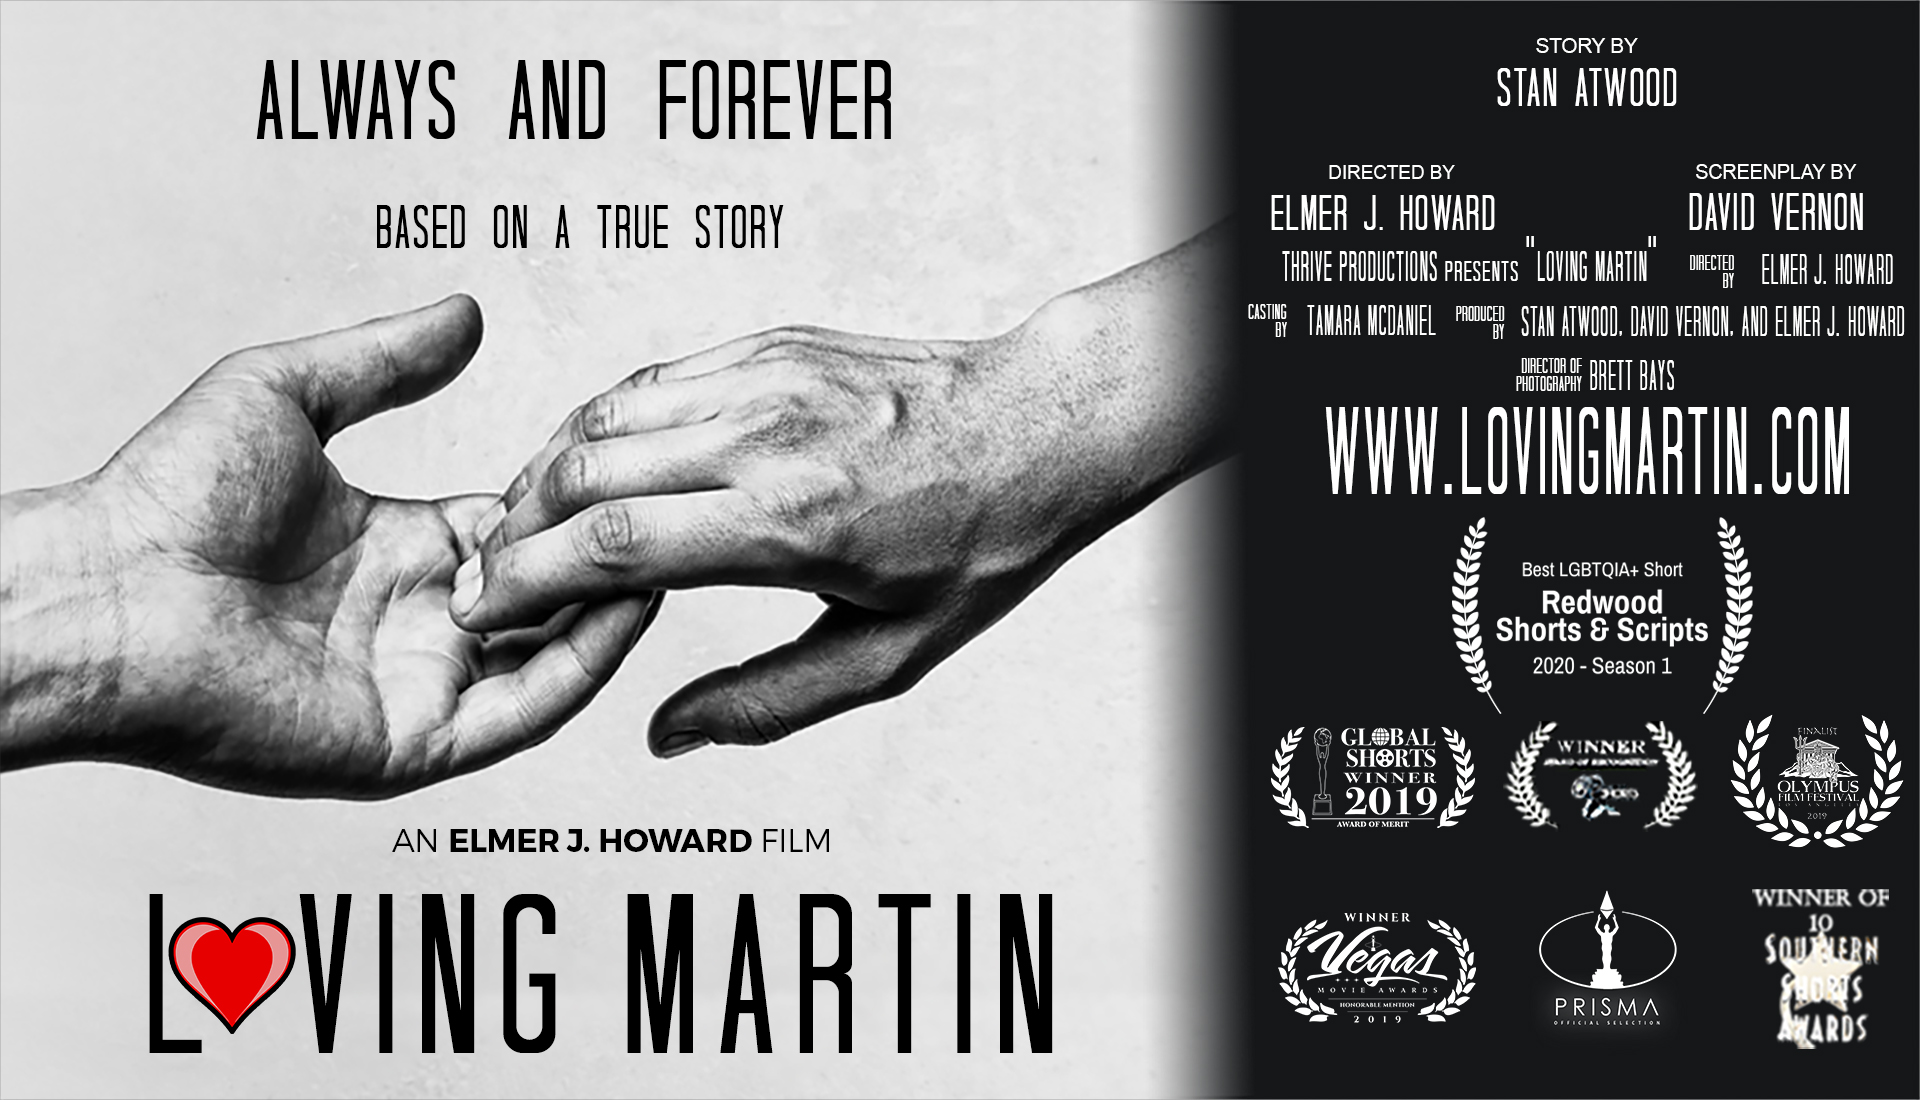 Loving Martin Movie poster showing two hands reaching for each other